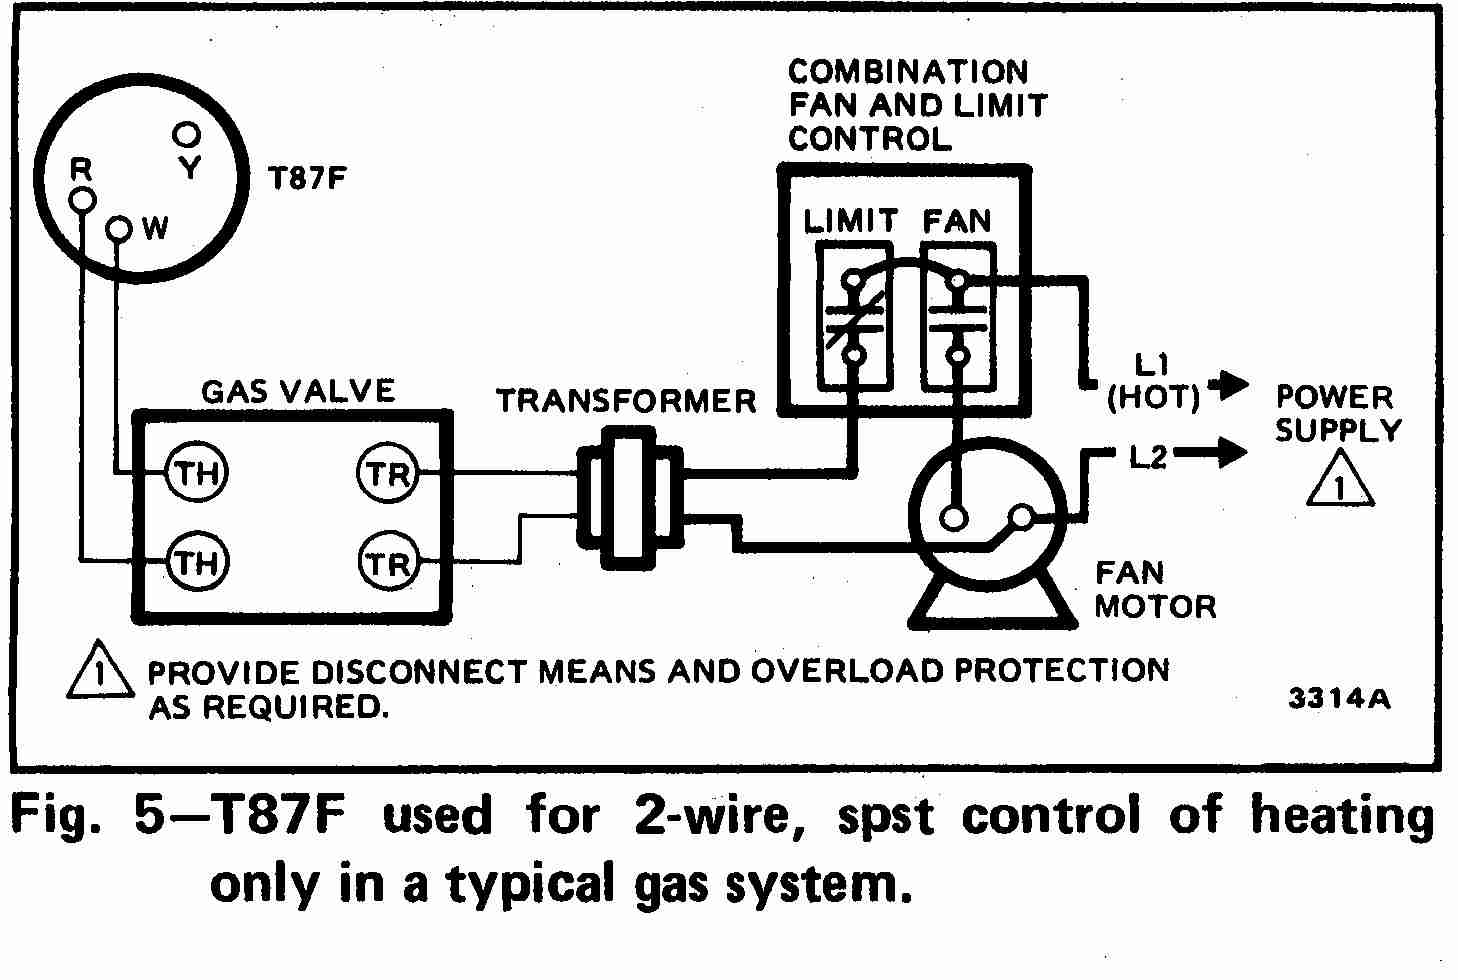 TT_T87F_0002_2Wg_DJF zone valve wiring installation & instructions guide to heating honeywell v8043 zone valve wiring diagram at soozxer.org